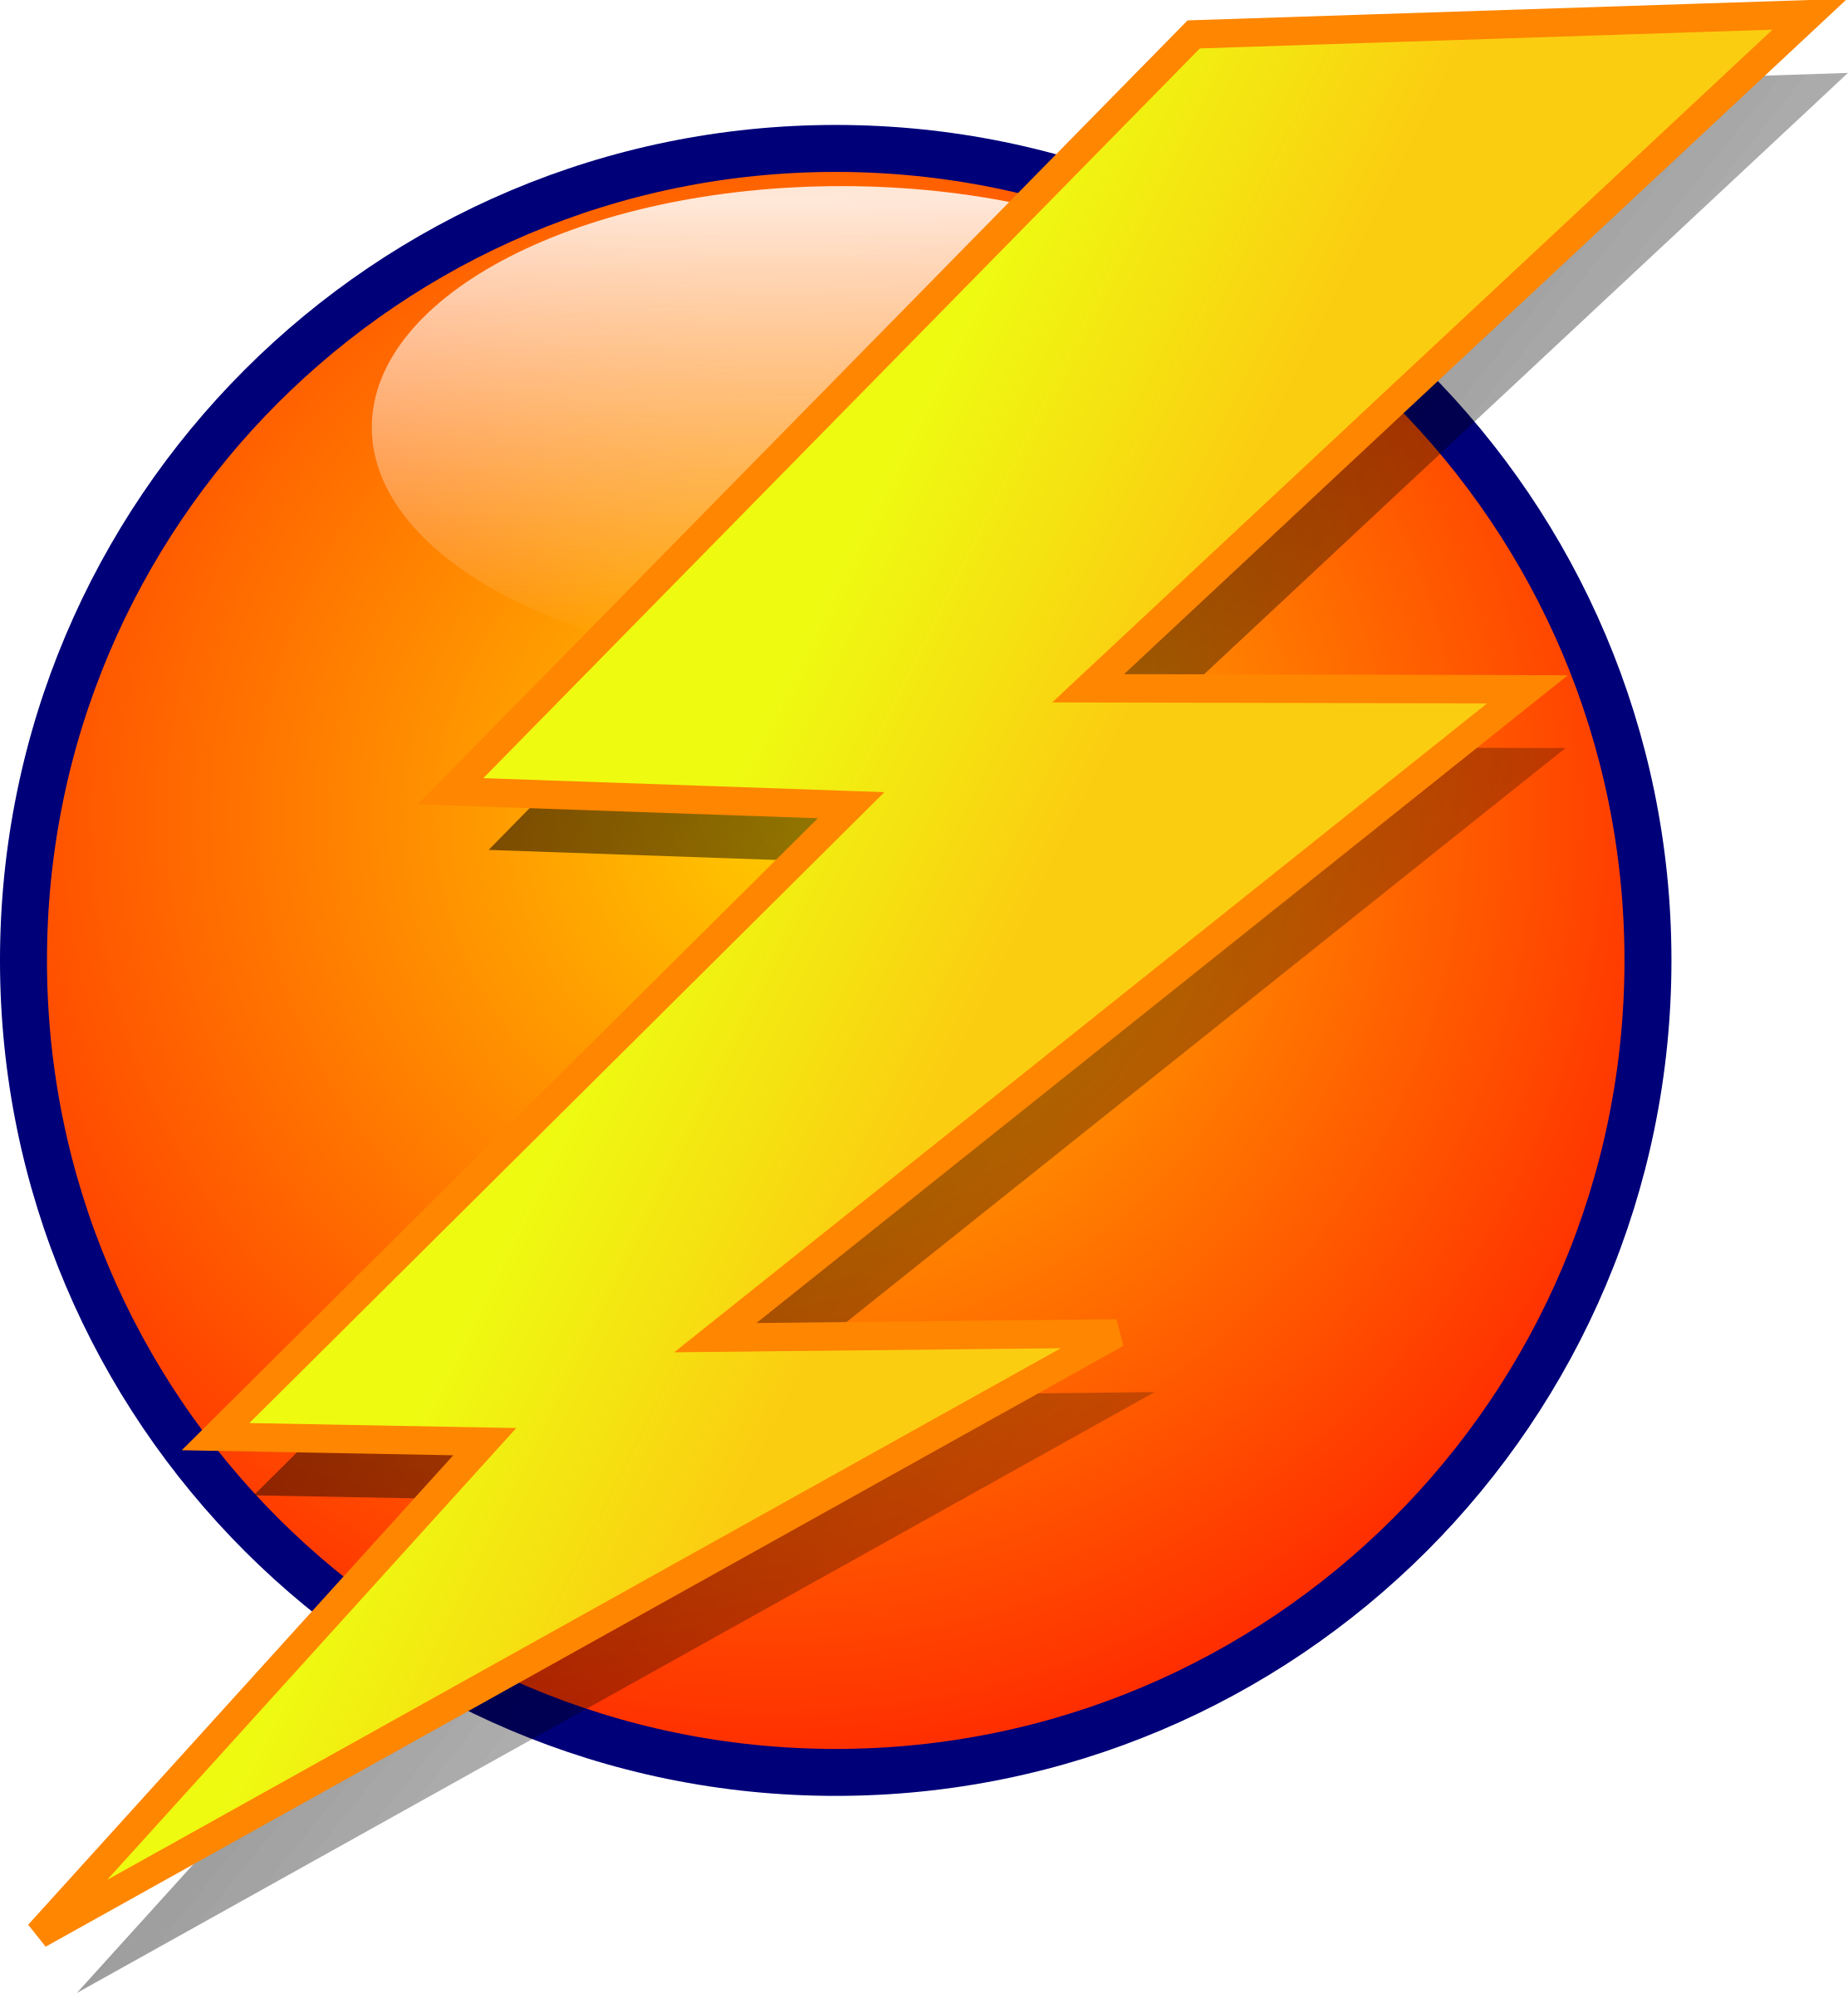 Lightning Orb Energy Icon vector clipart image.